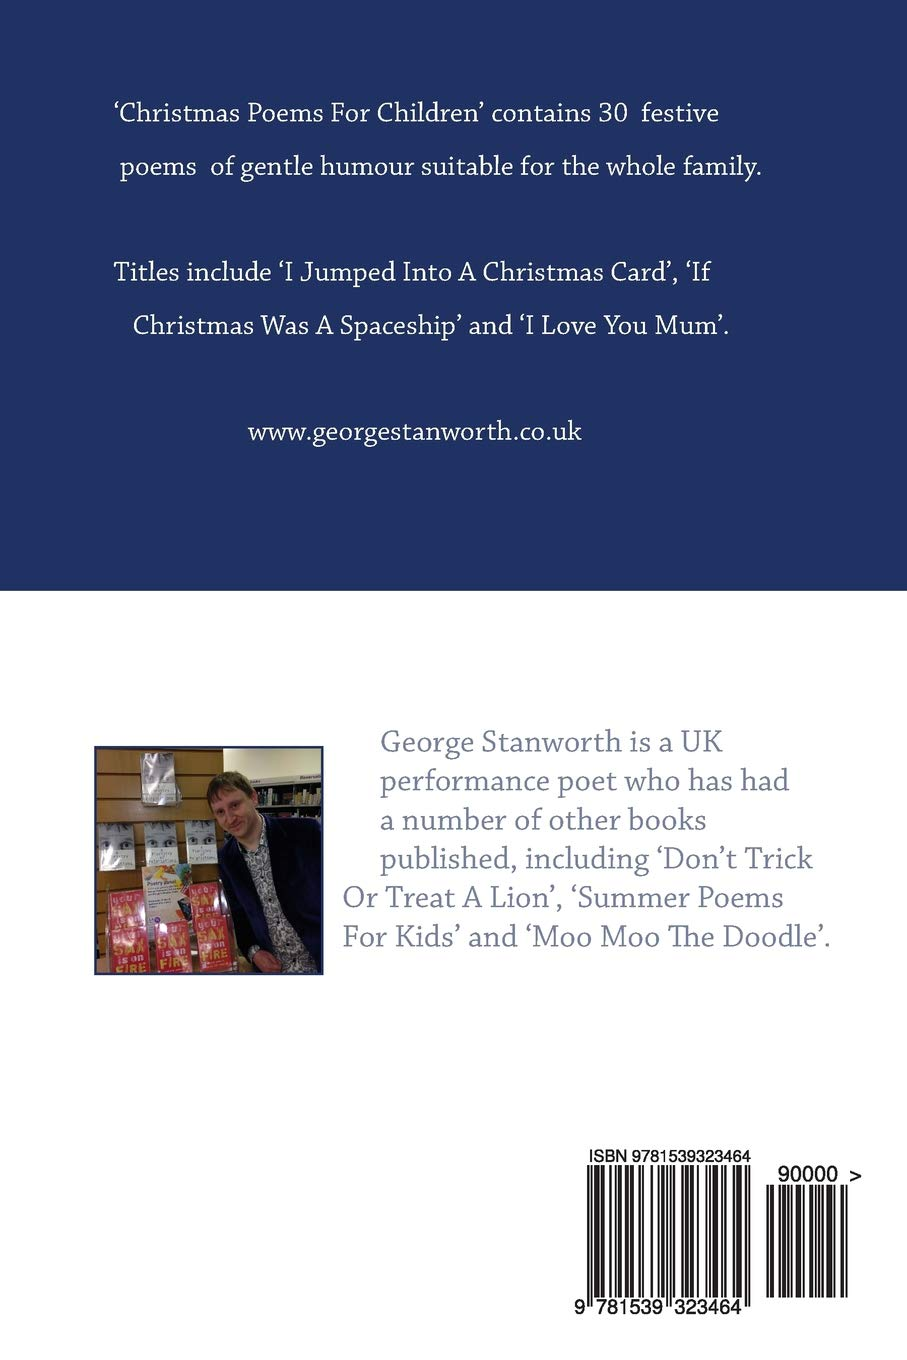 Christmas Poems For Children (2nd Edition): Amazon.co.uk: George ...